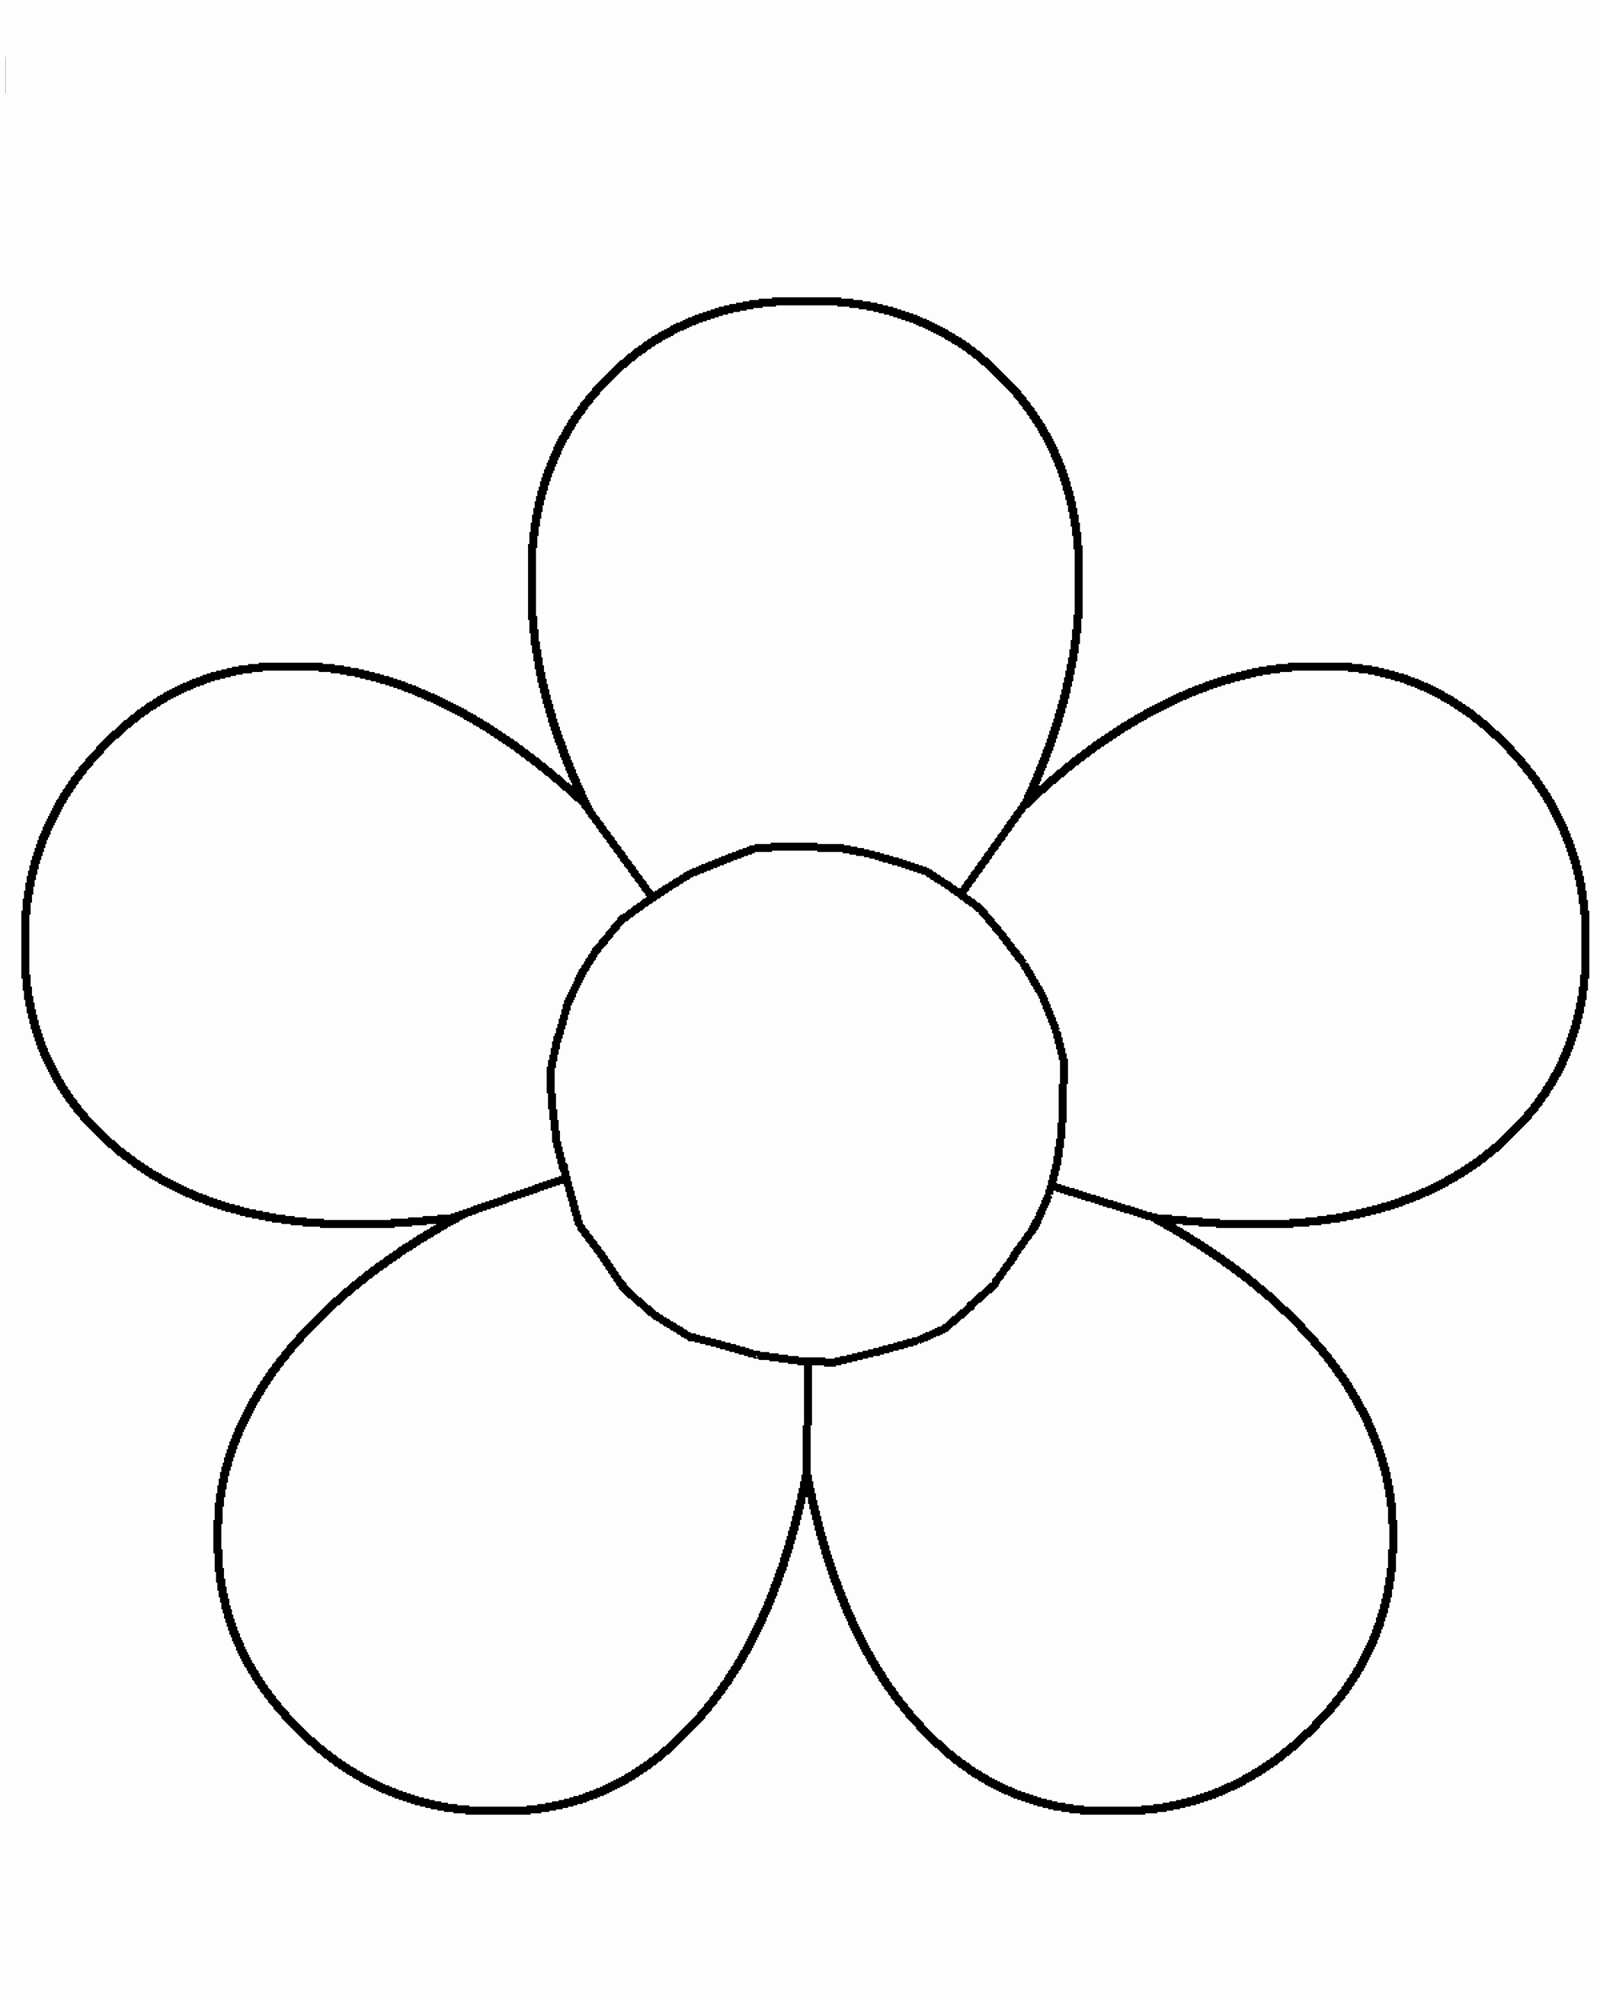 Printable Flower Template Cut Out Lovely Blank Flower Template 12 1600 X 2000